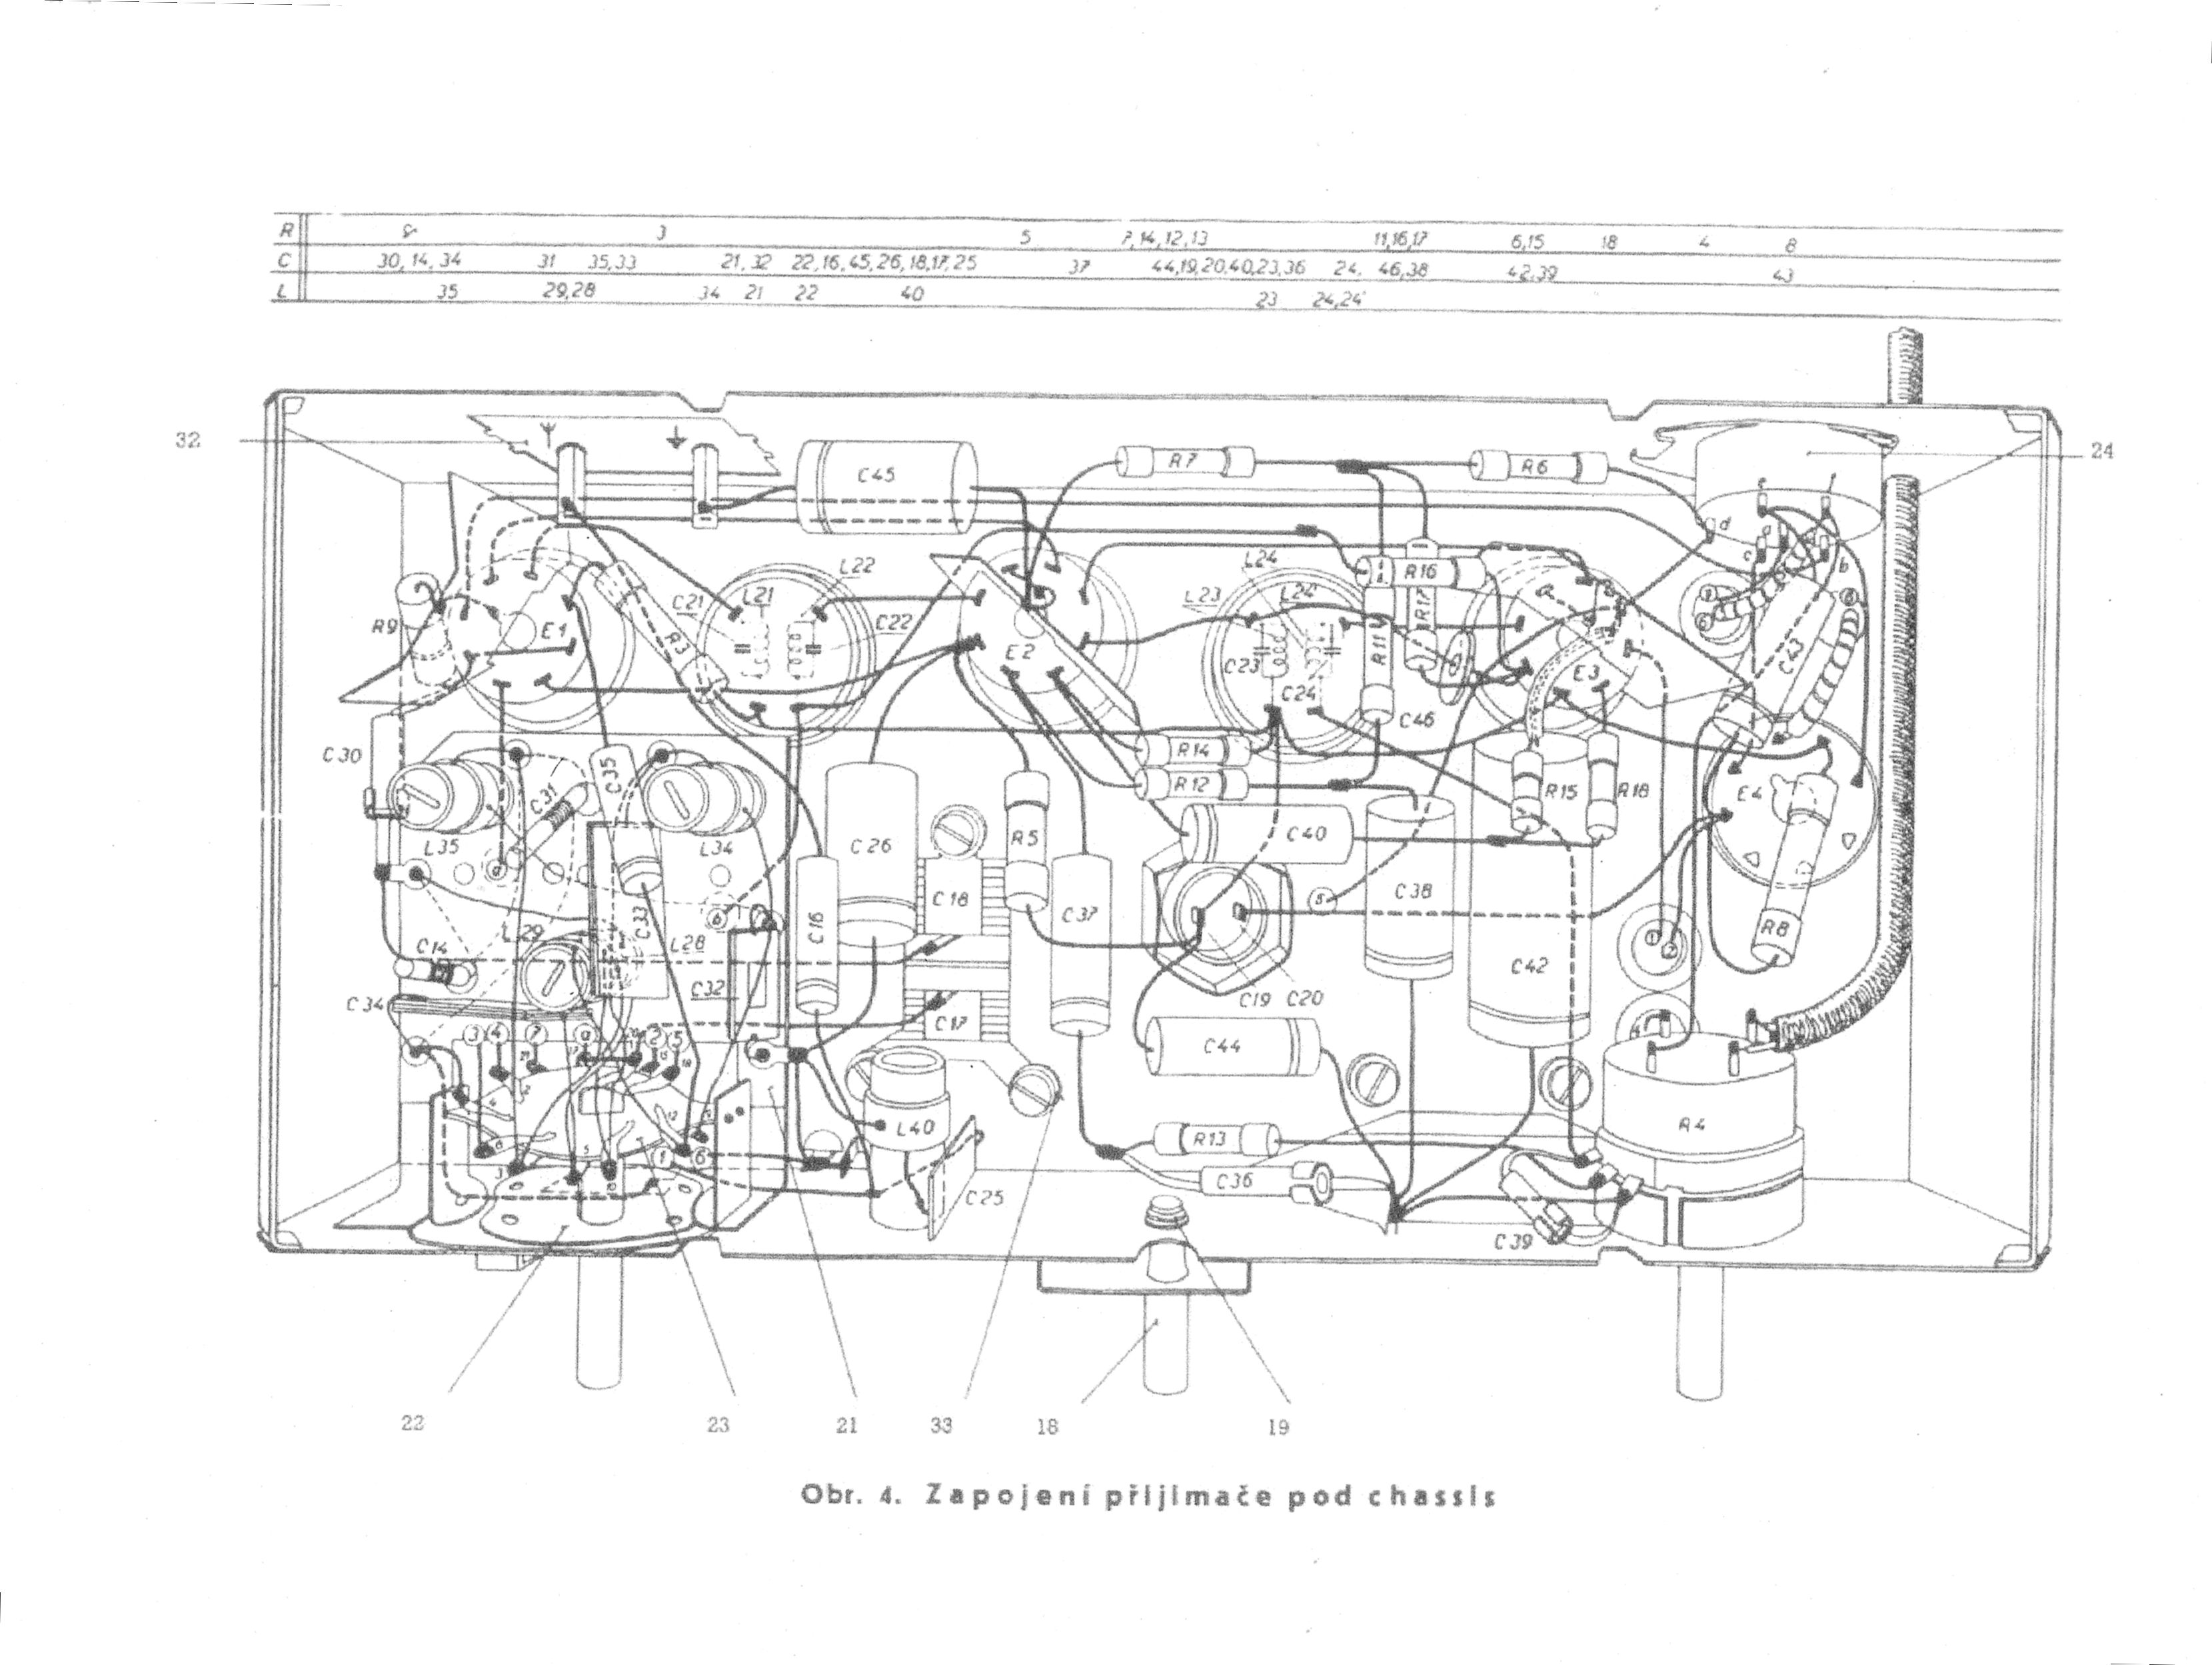 Wiring A Mobile Home For Service | Get Free Wiring Diagrams on